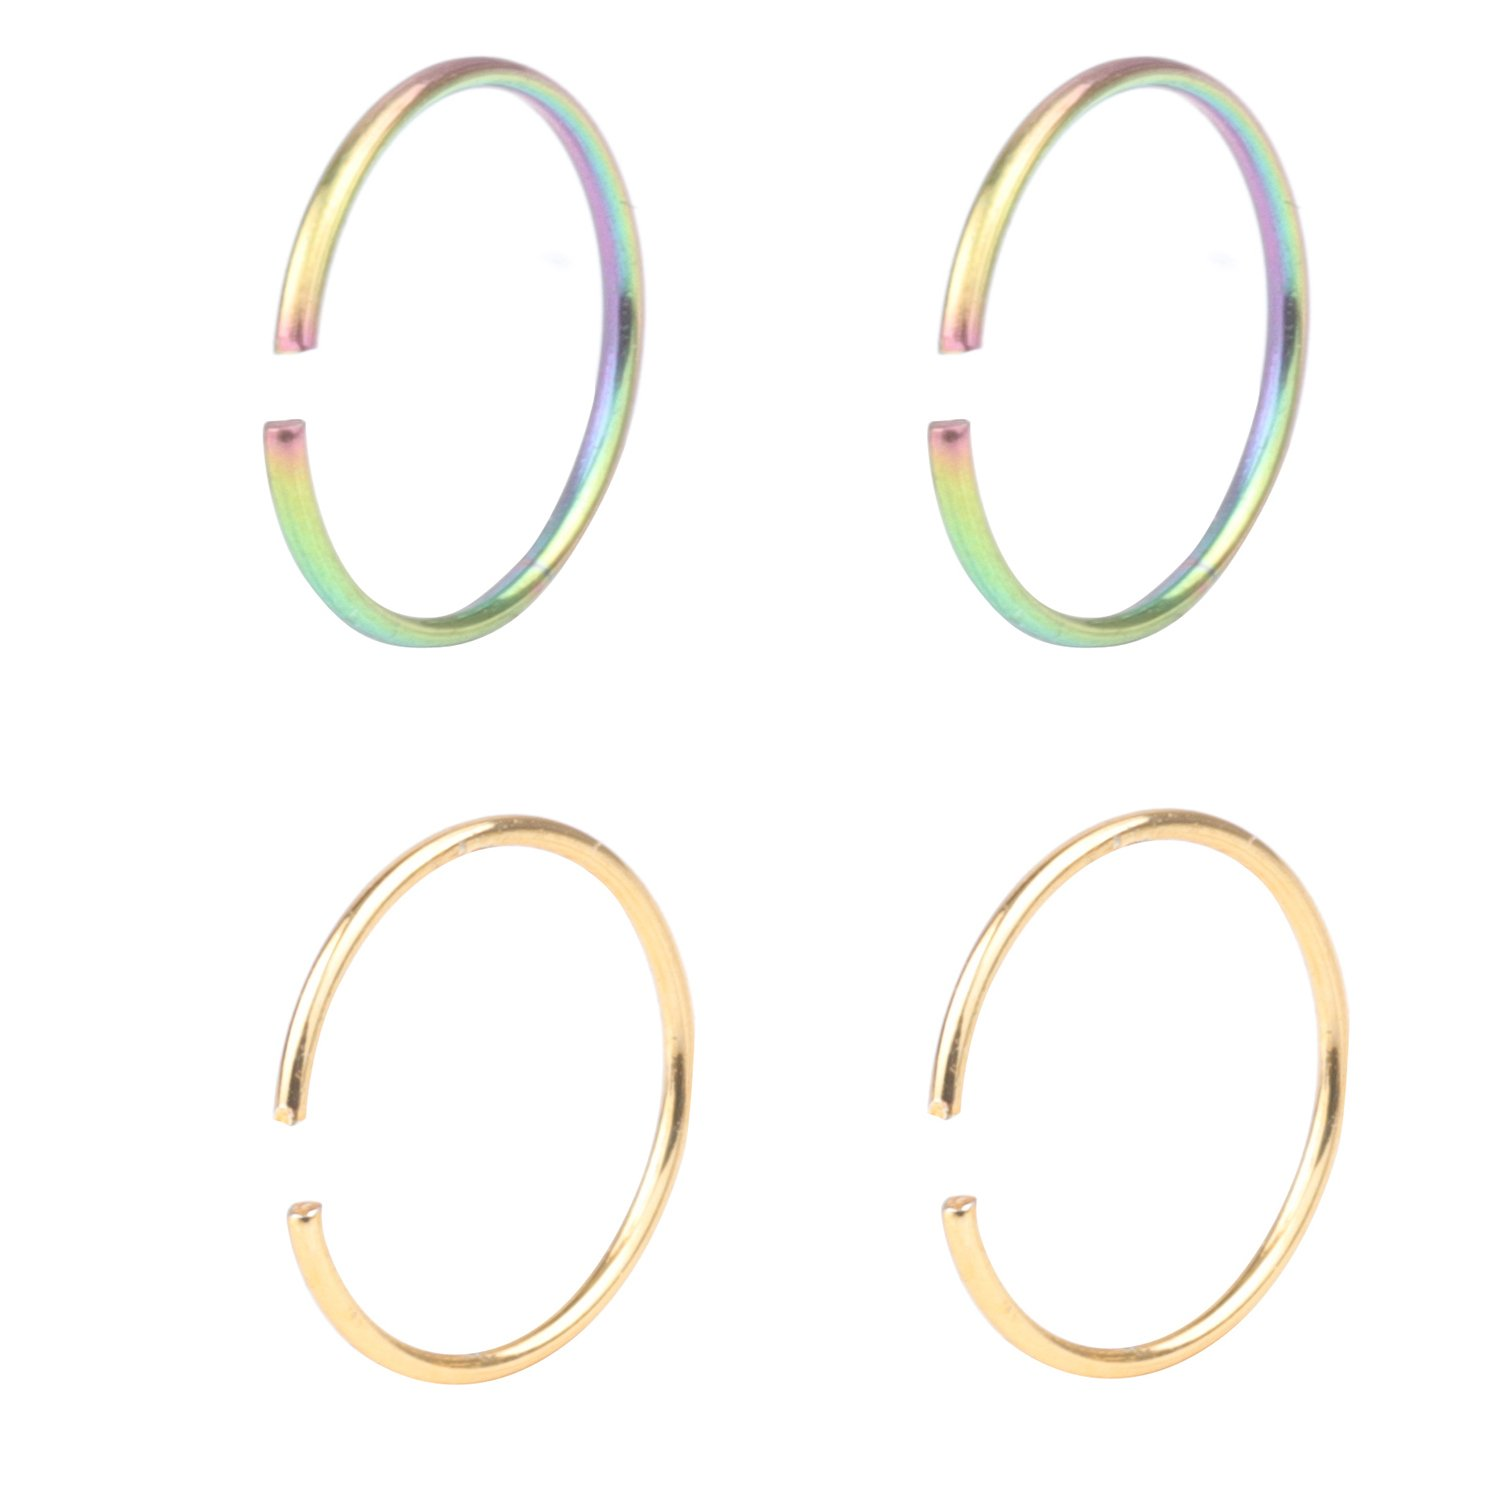 DRS 4pcs 22G Stainless Steel Non-Piercing Fake Clip on Closure Earrings Round Helix Cartilage Tragus Nose Lip Ear Hoop 8mm